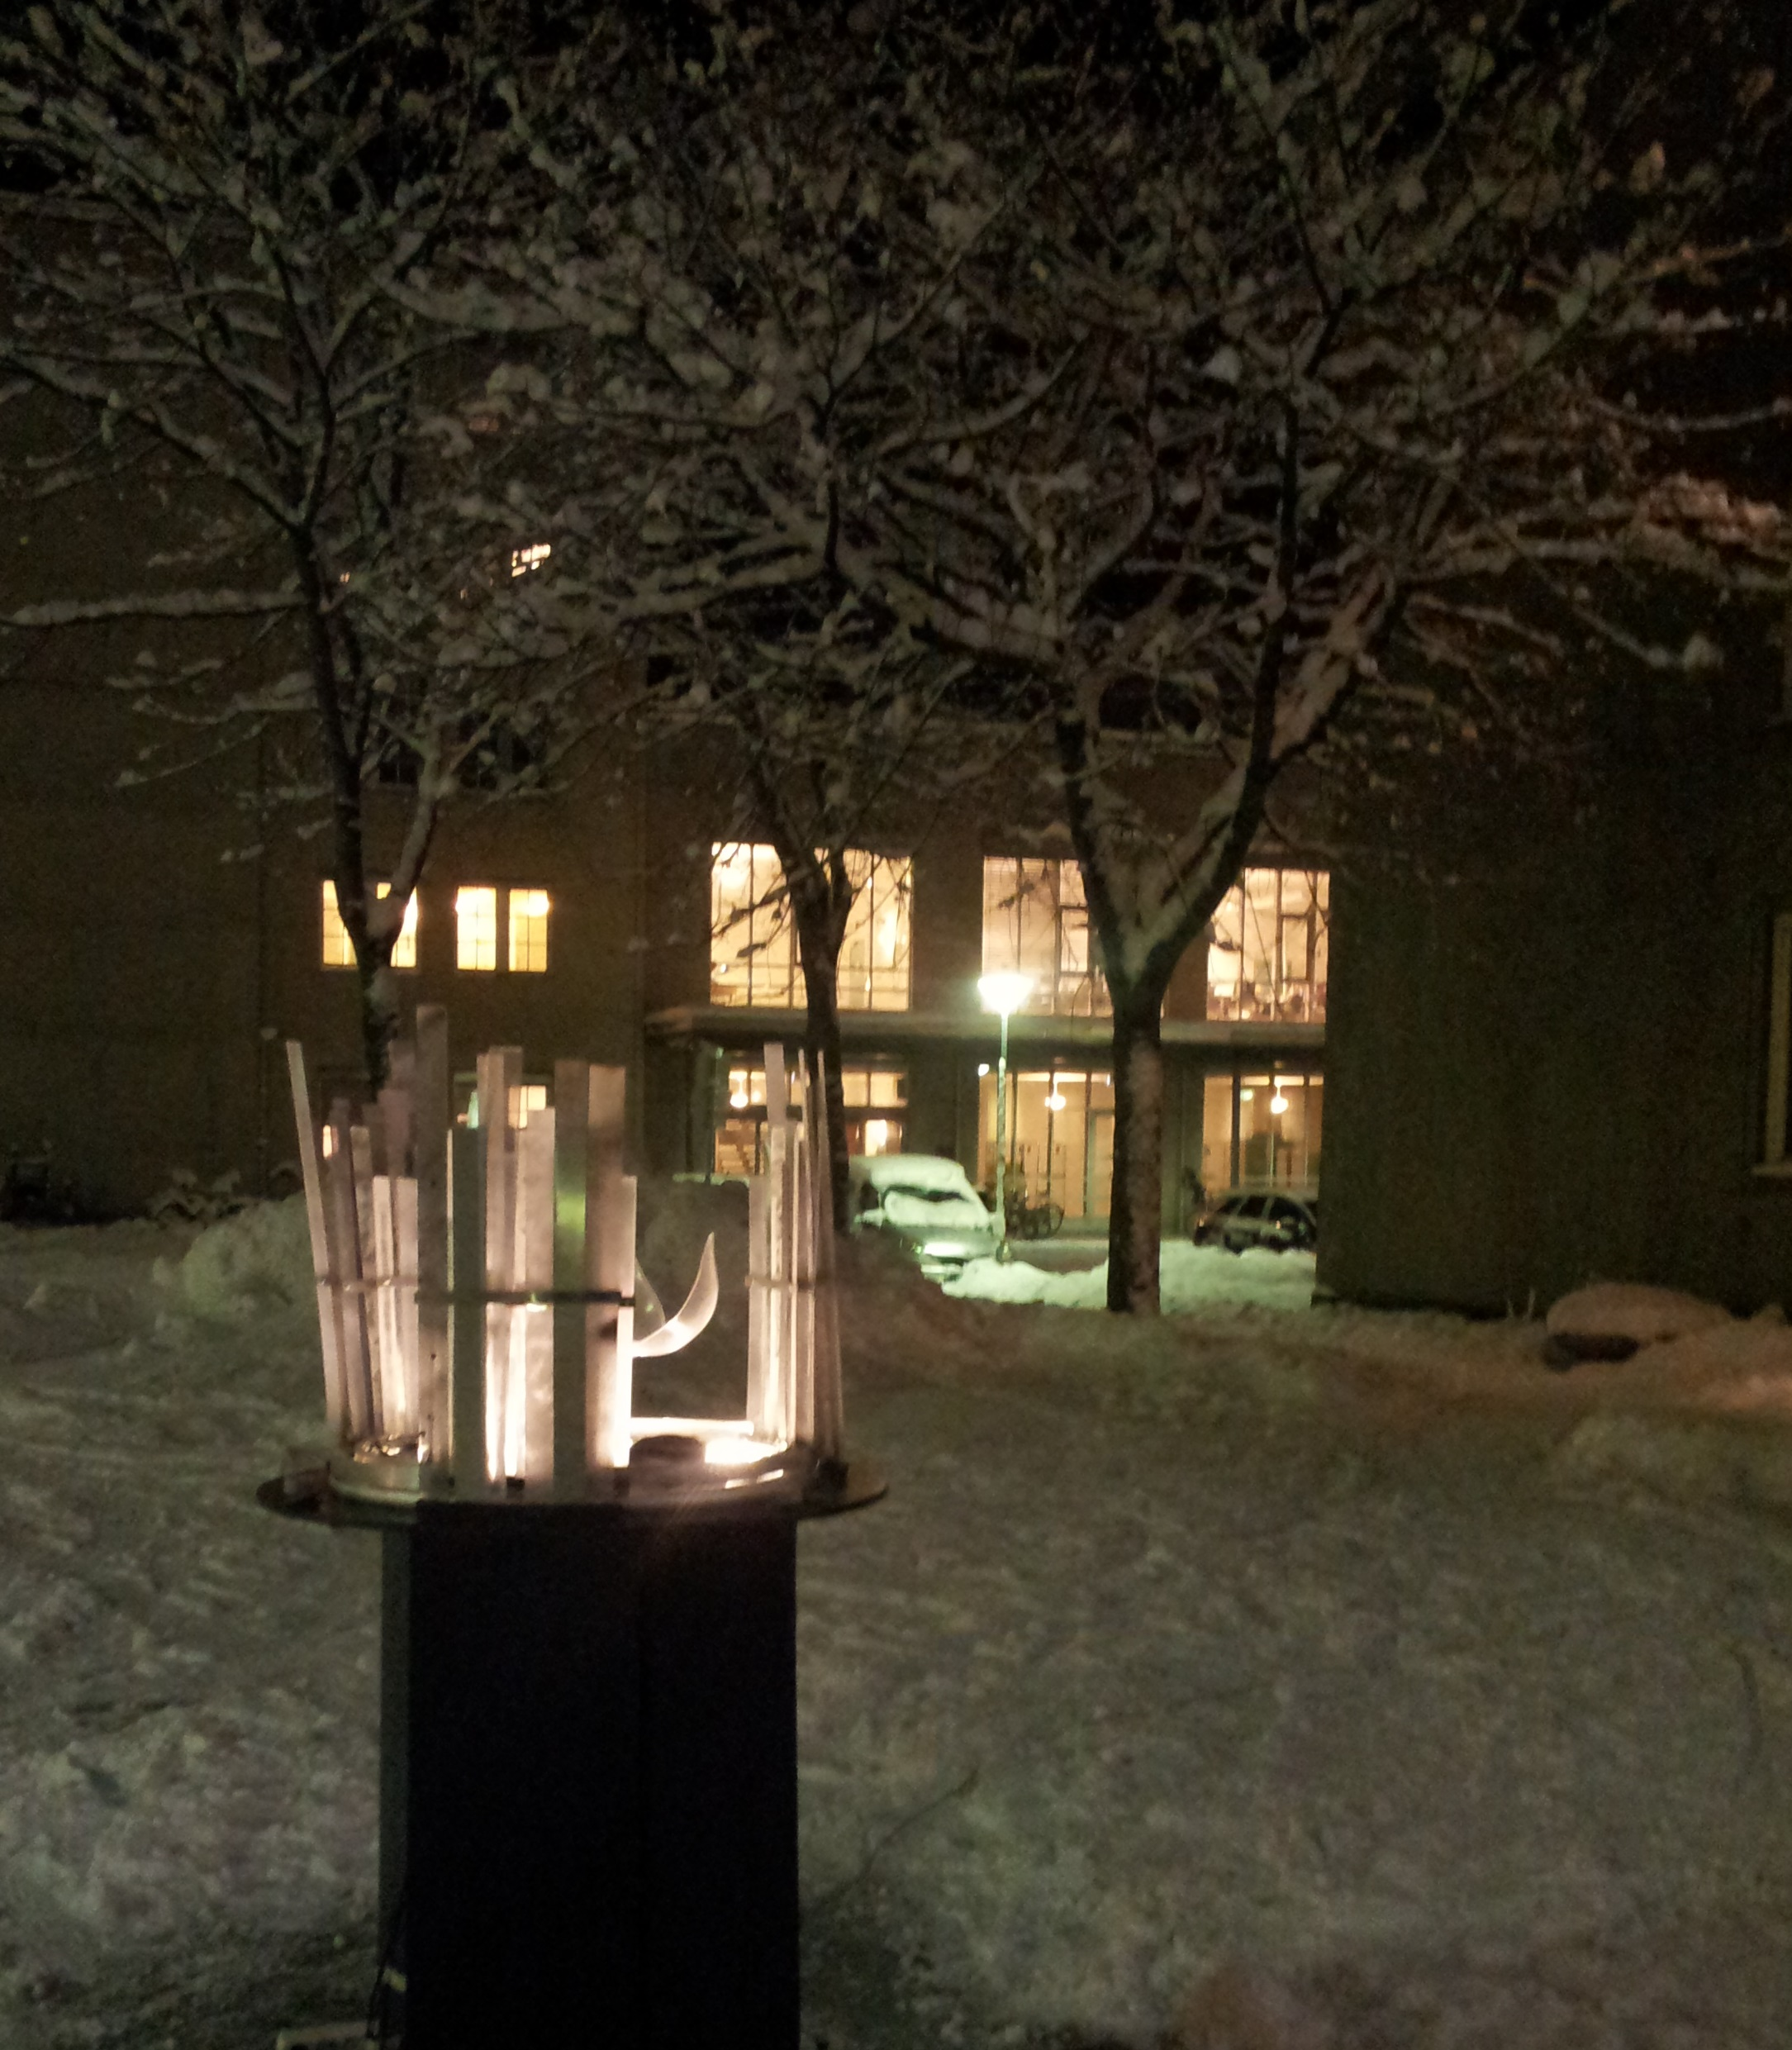 The installation outside in the winter night